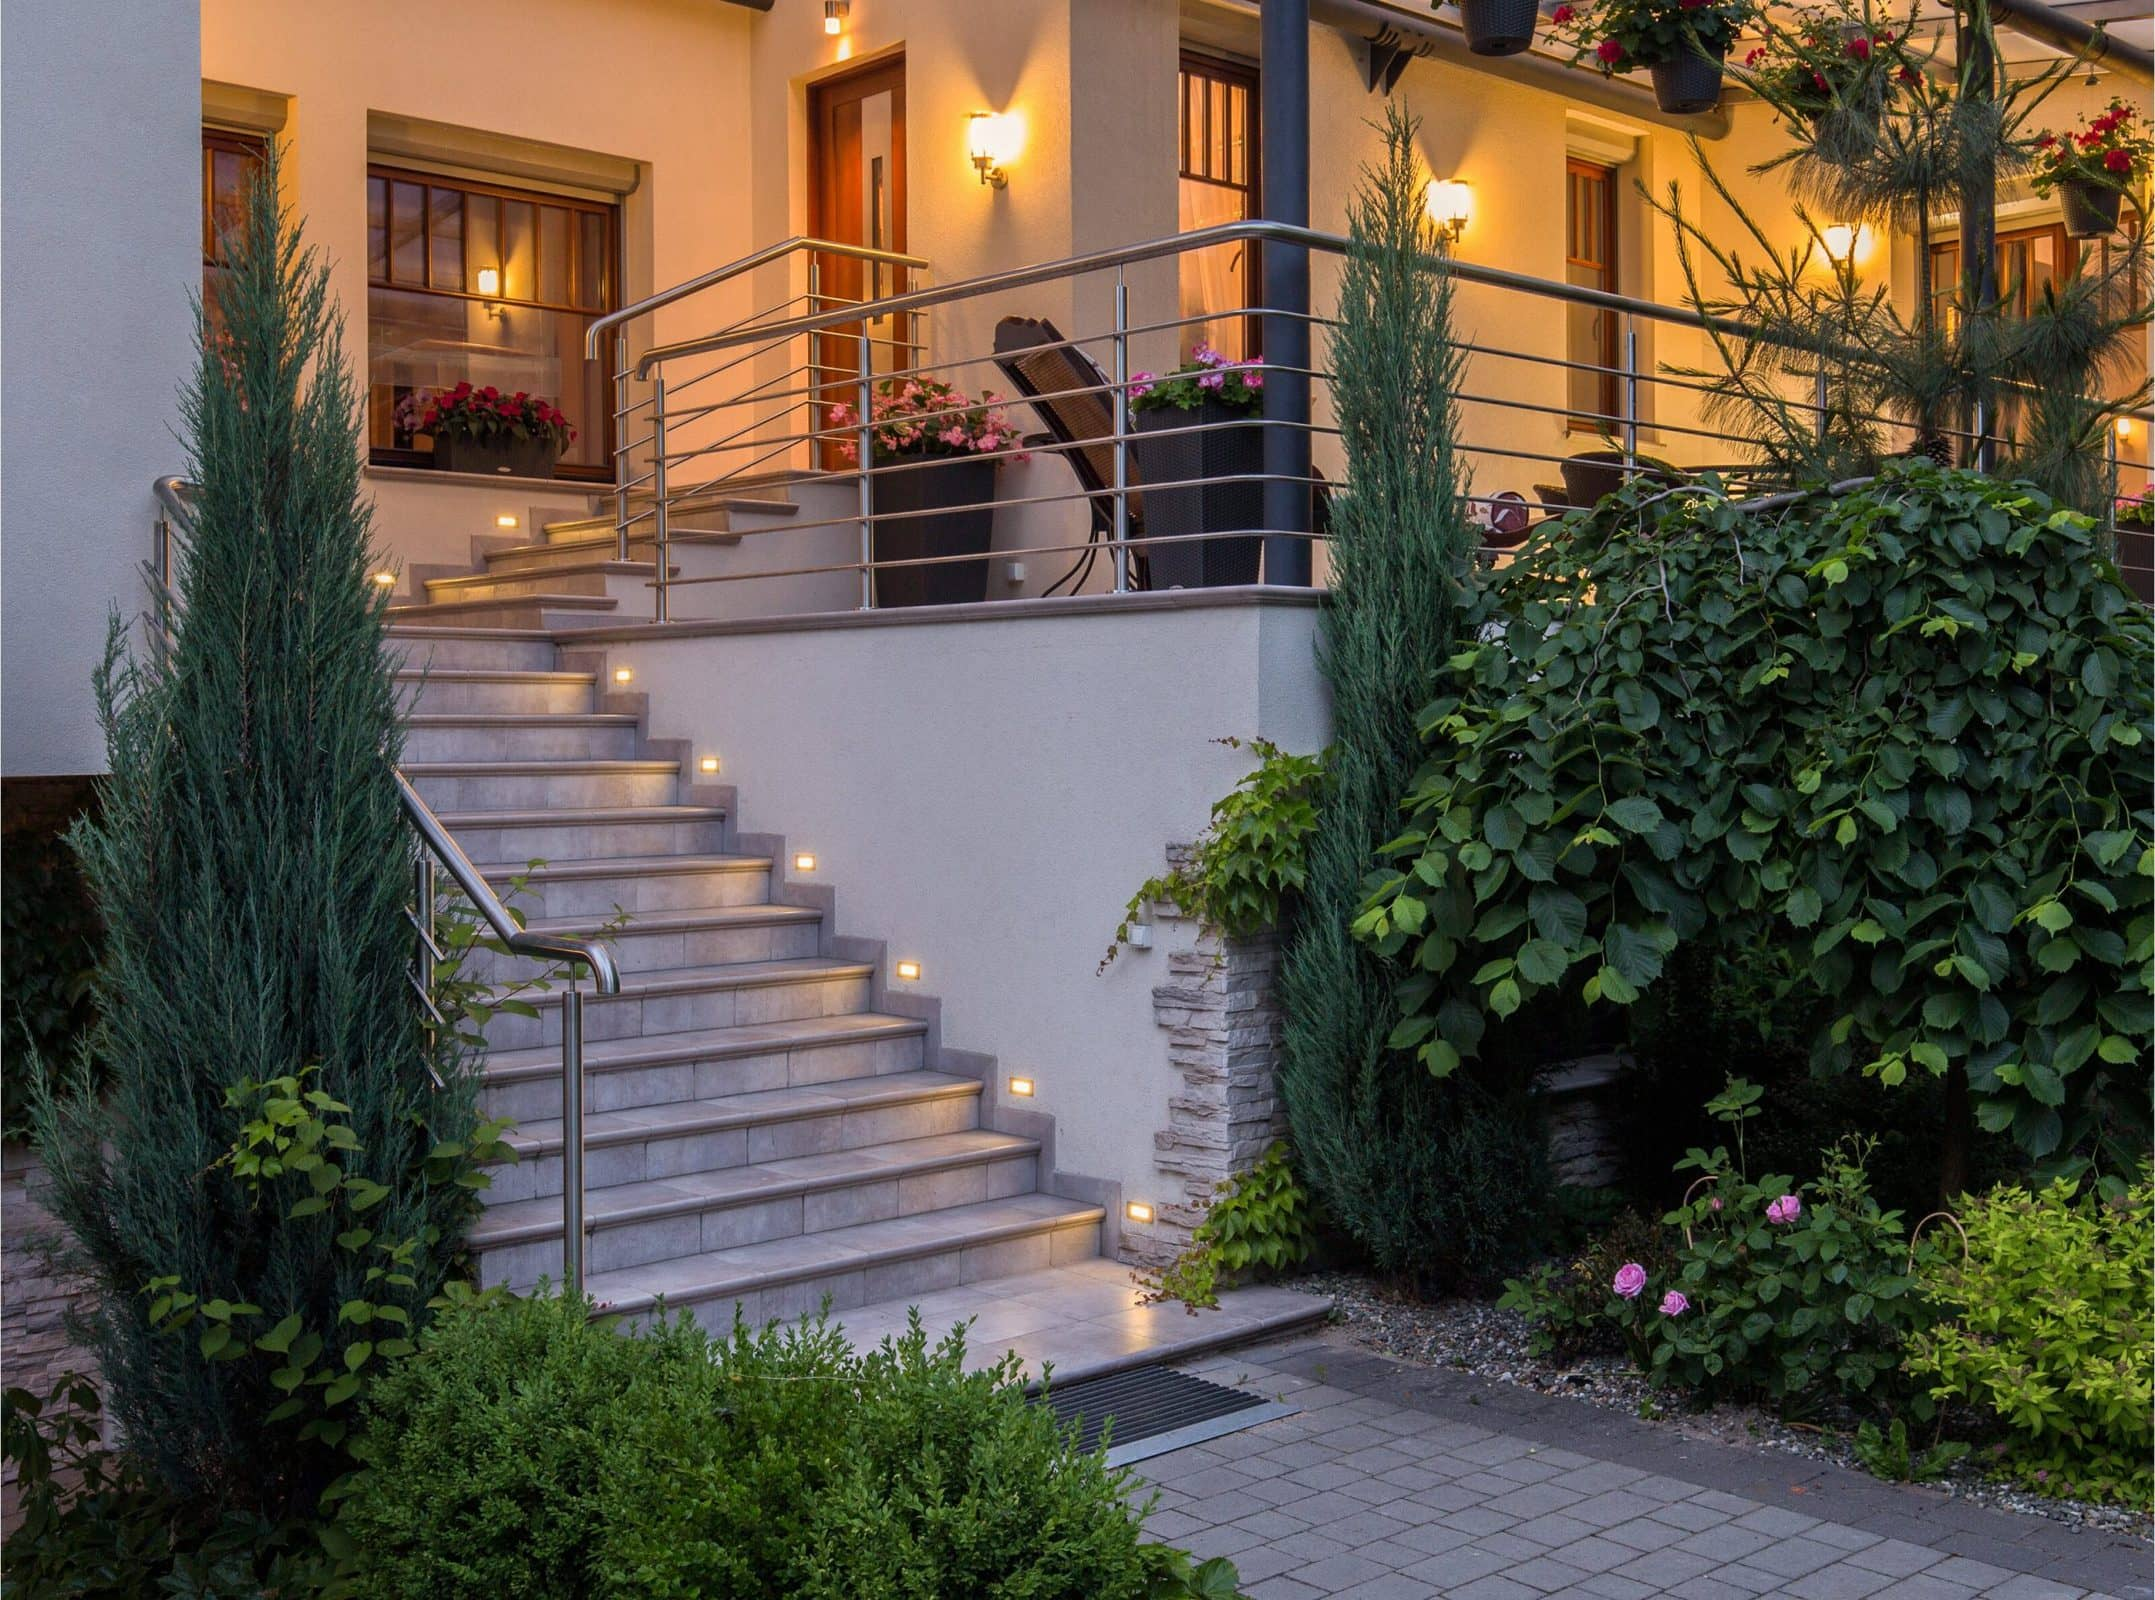 Install LED Stair Lights on The Walls Above Each Step